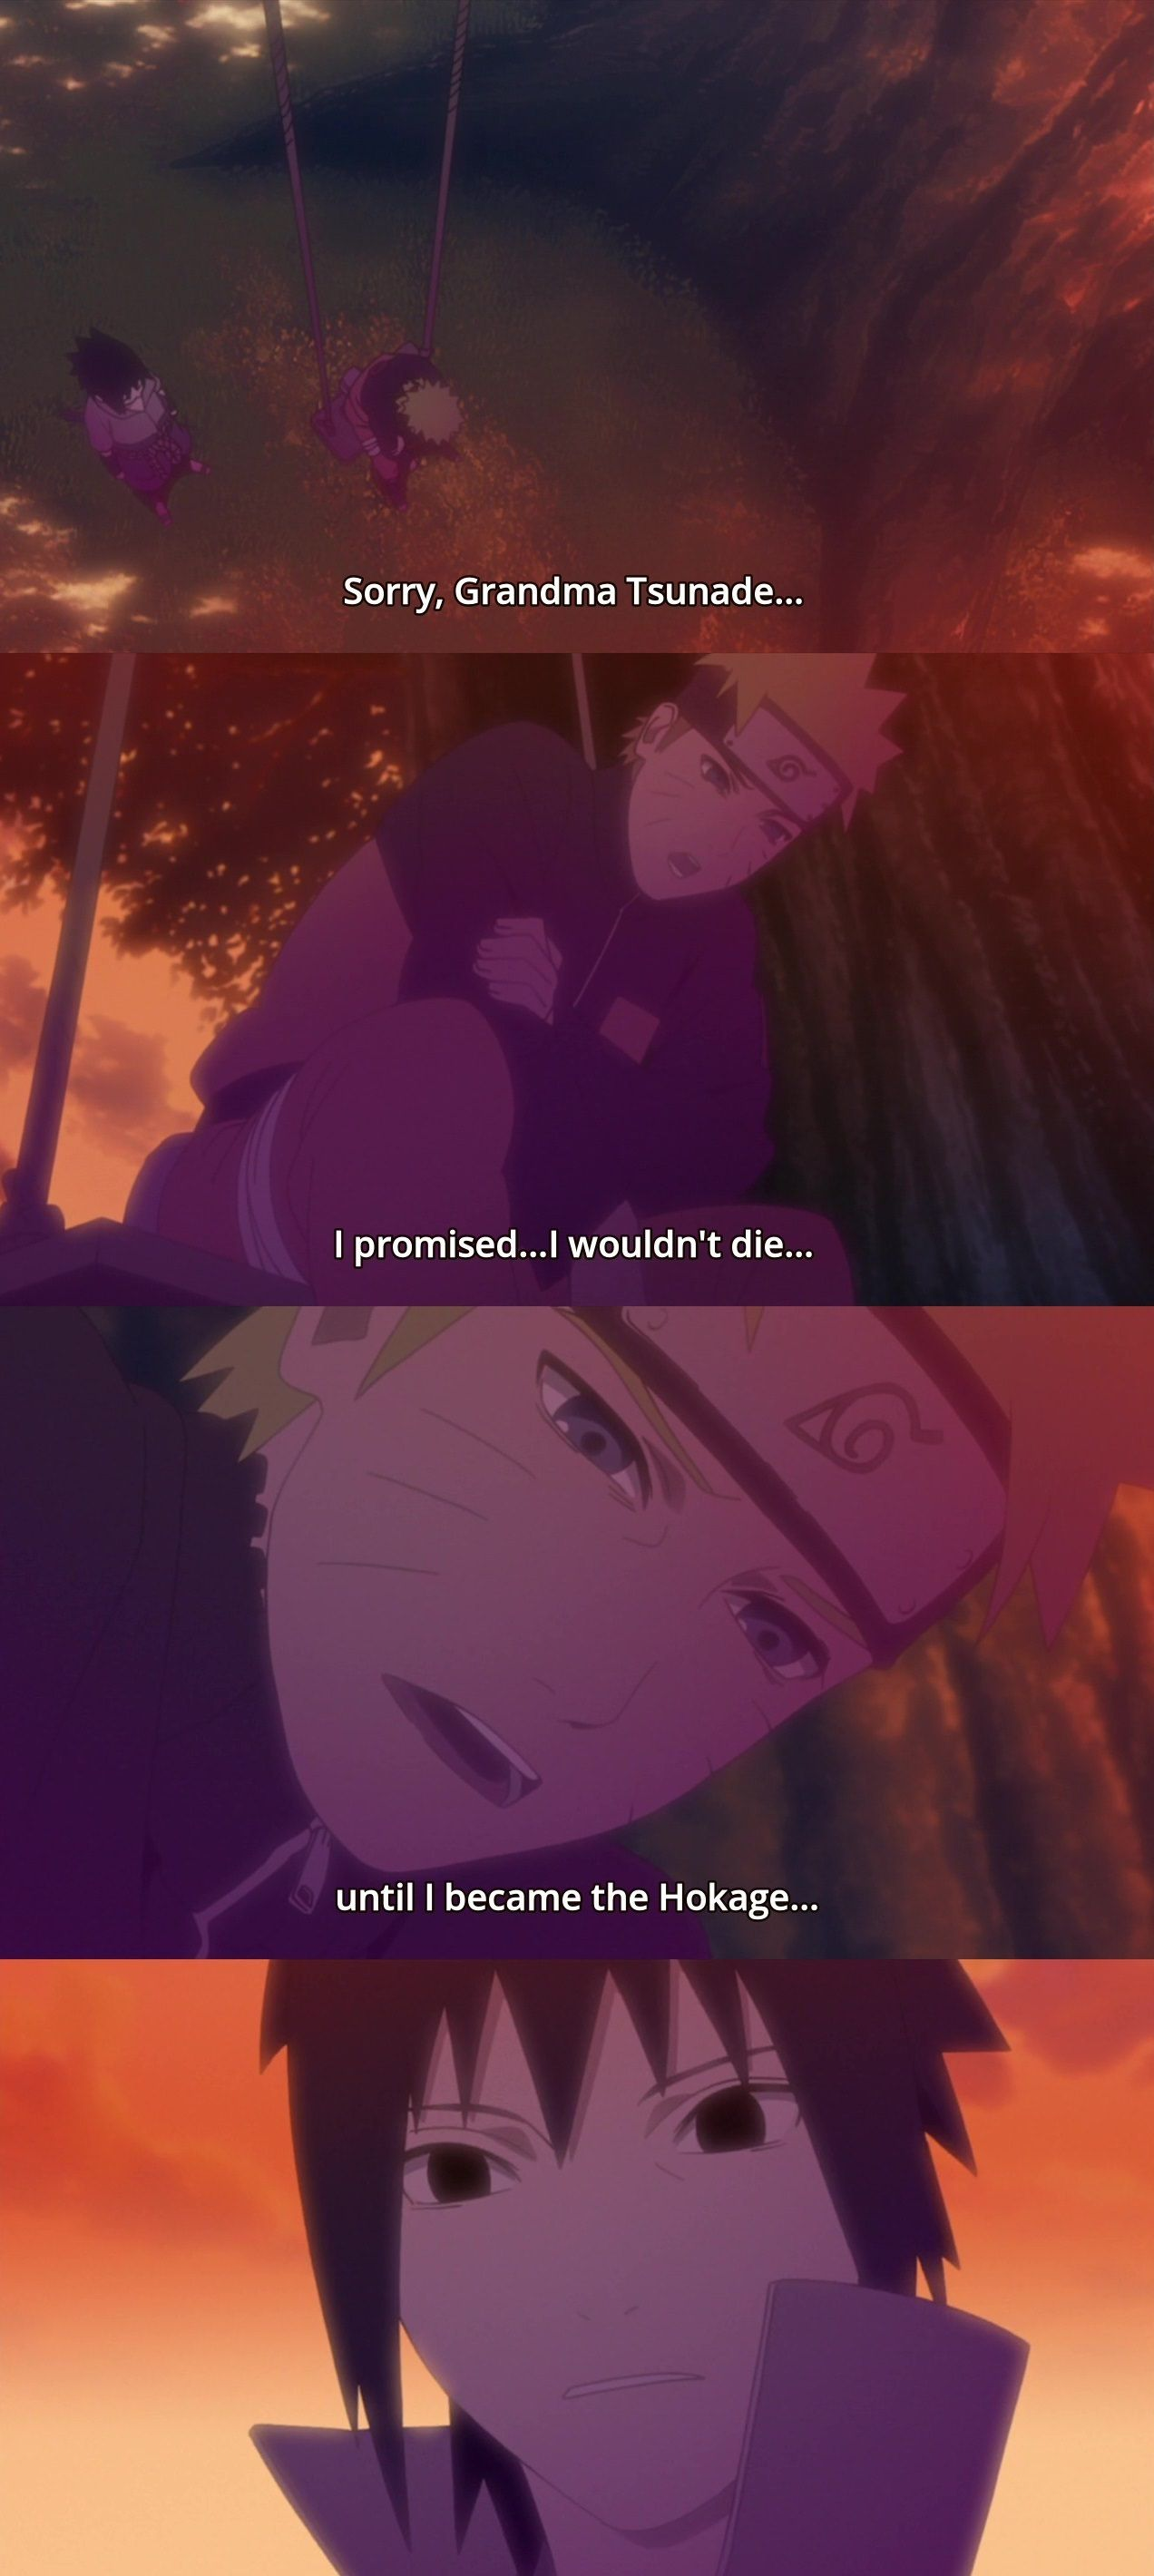 Photo of That moment when Sasuke realized he (almost) destroyed Naruto's dream.